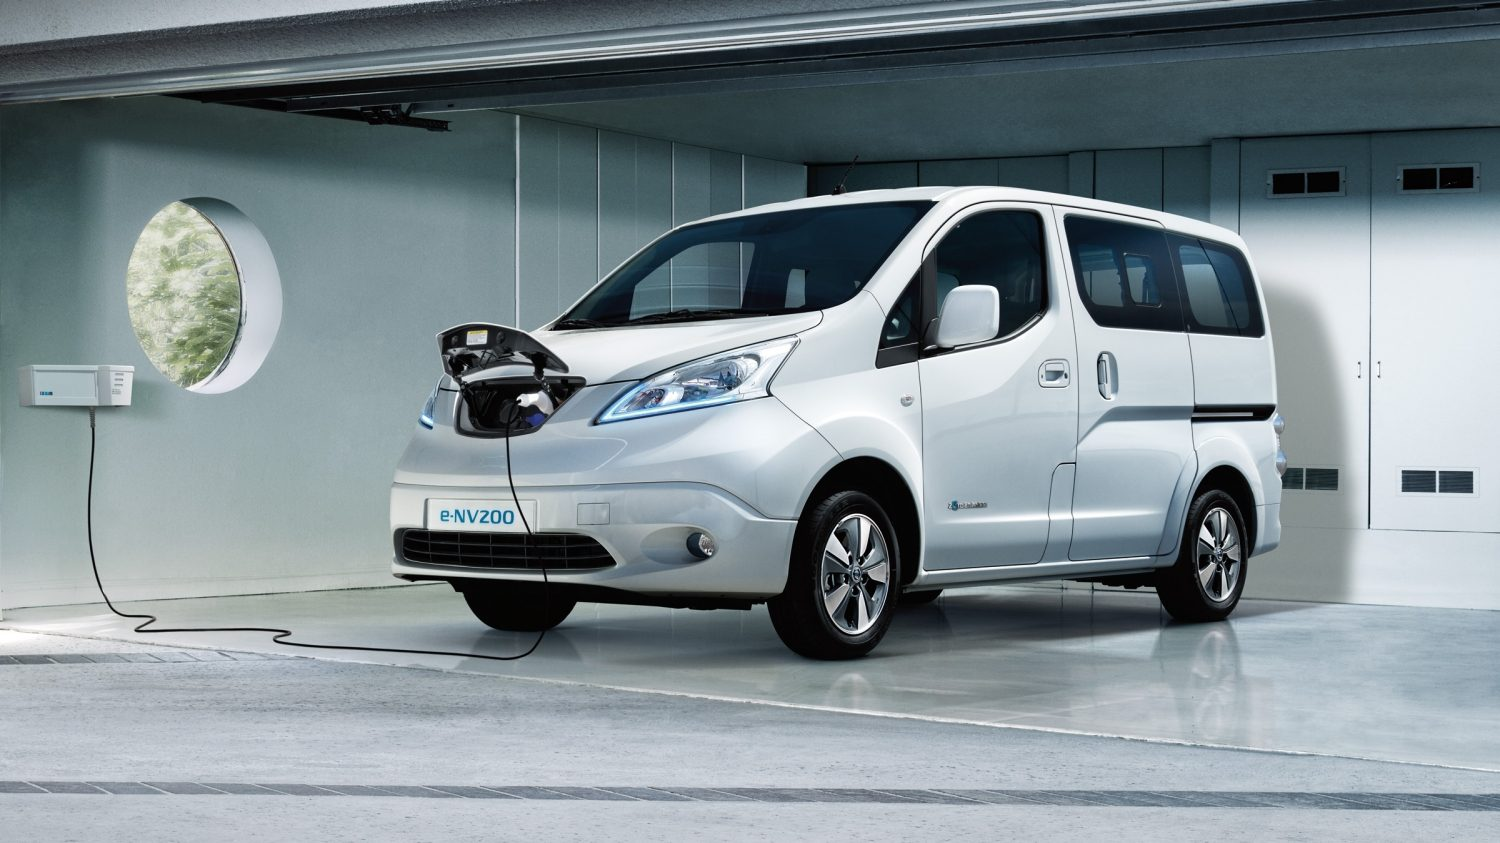 Nissan e-NV200 EVALIA - Laden in de garage met thuislaadeenheid